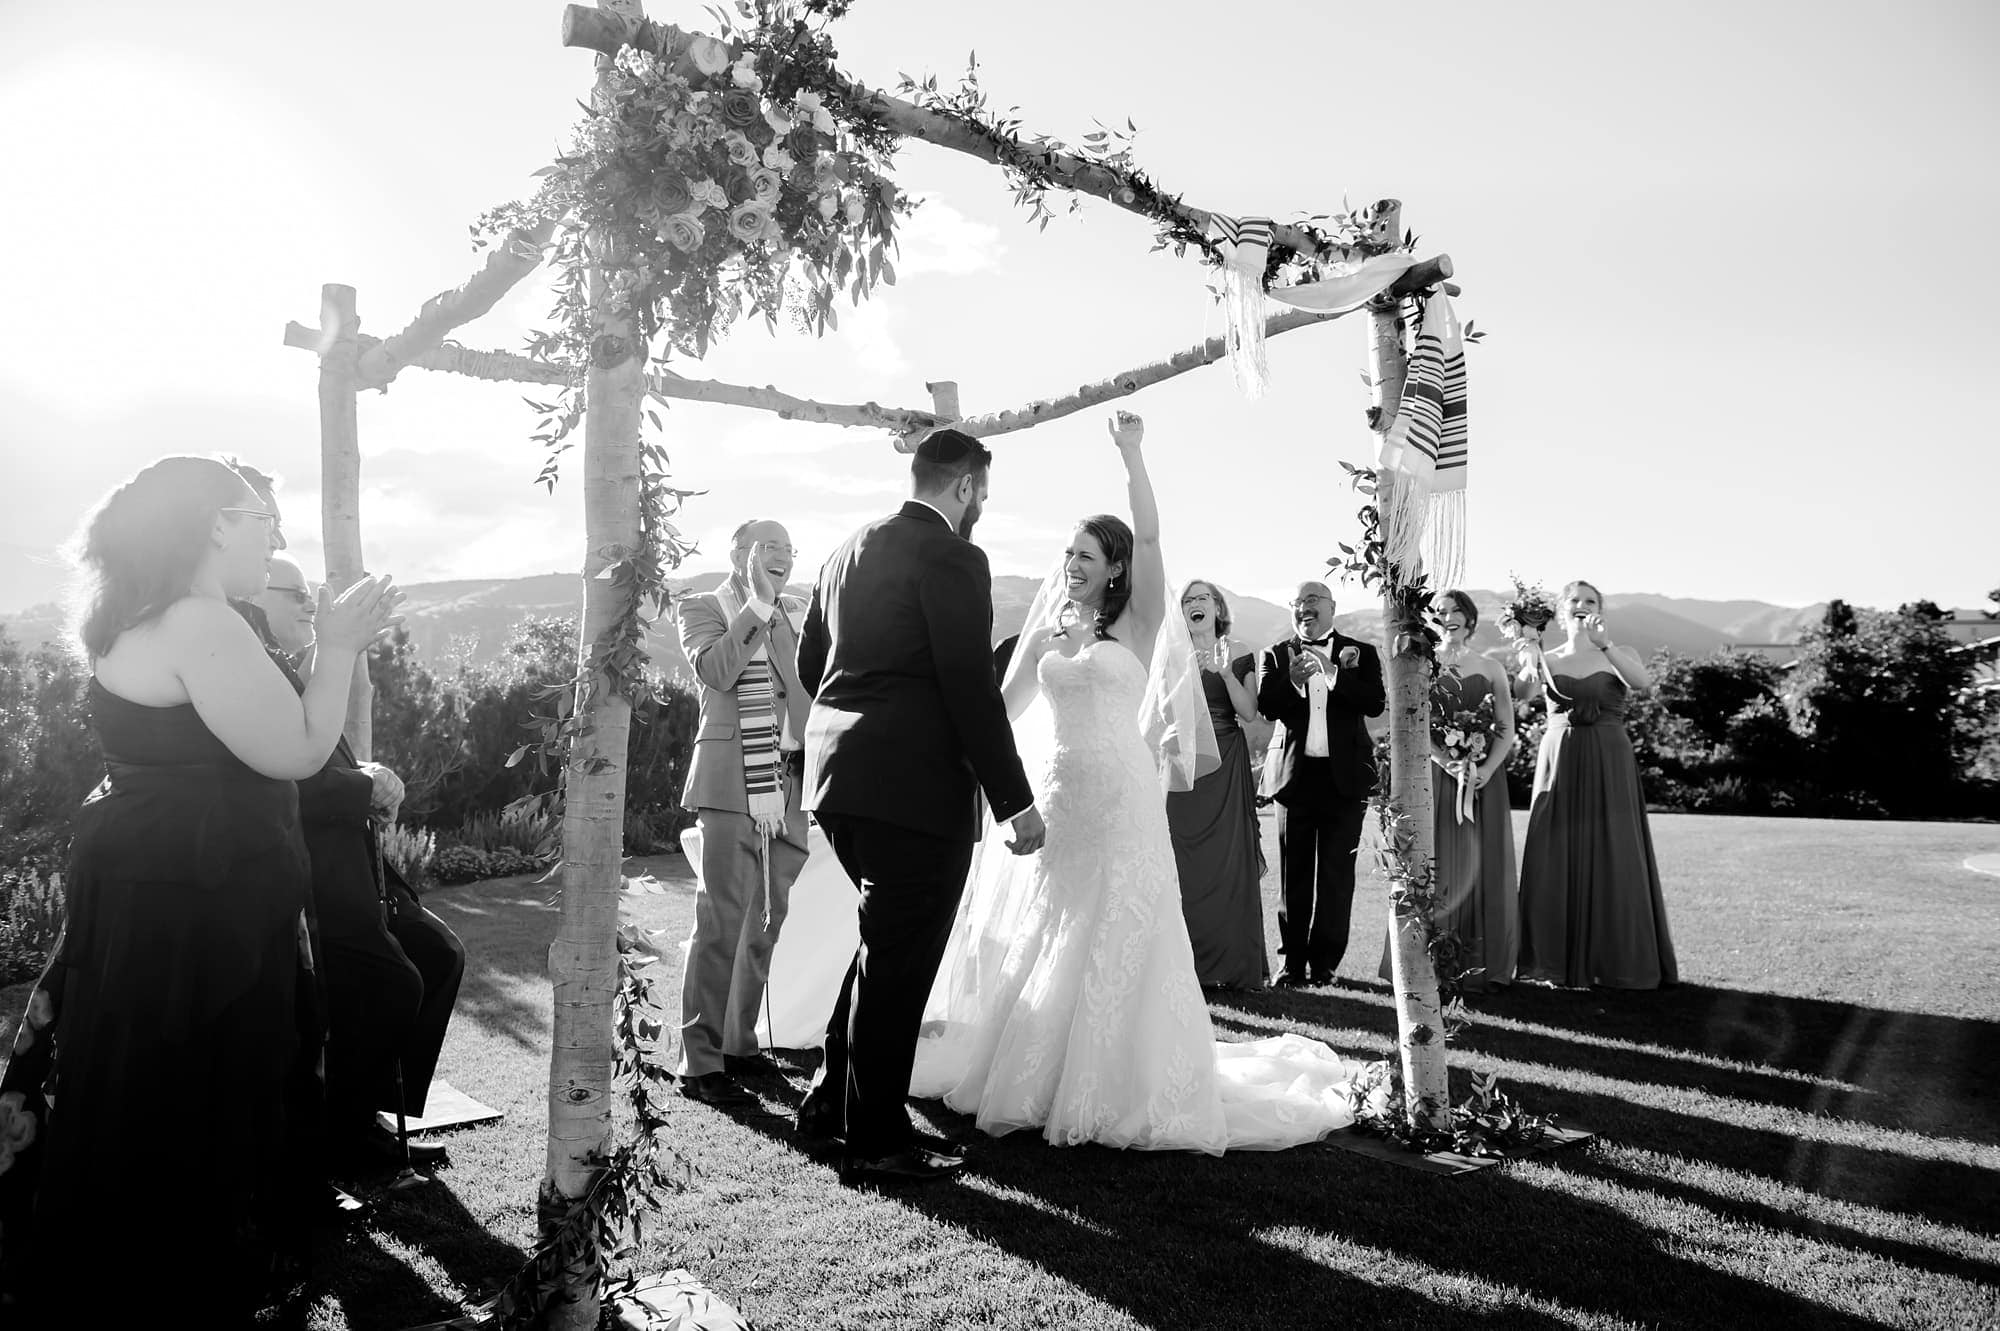 The bride celebrates under the chuppah made of aspen trees at Garden of the Gods Club in Colorado Springs